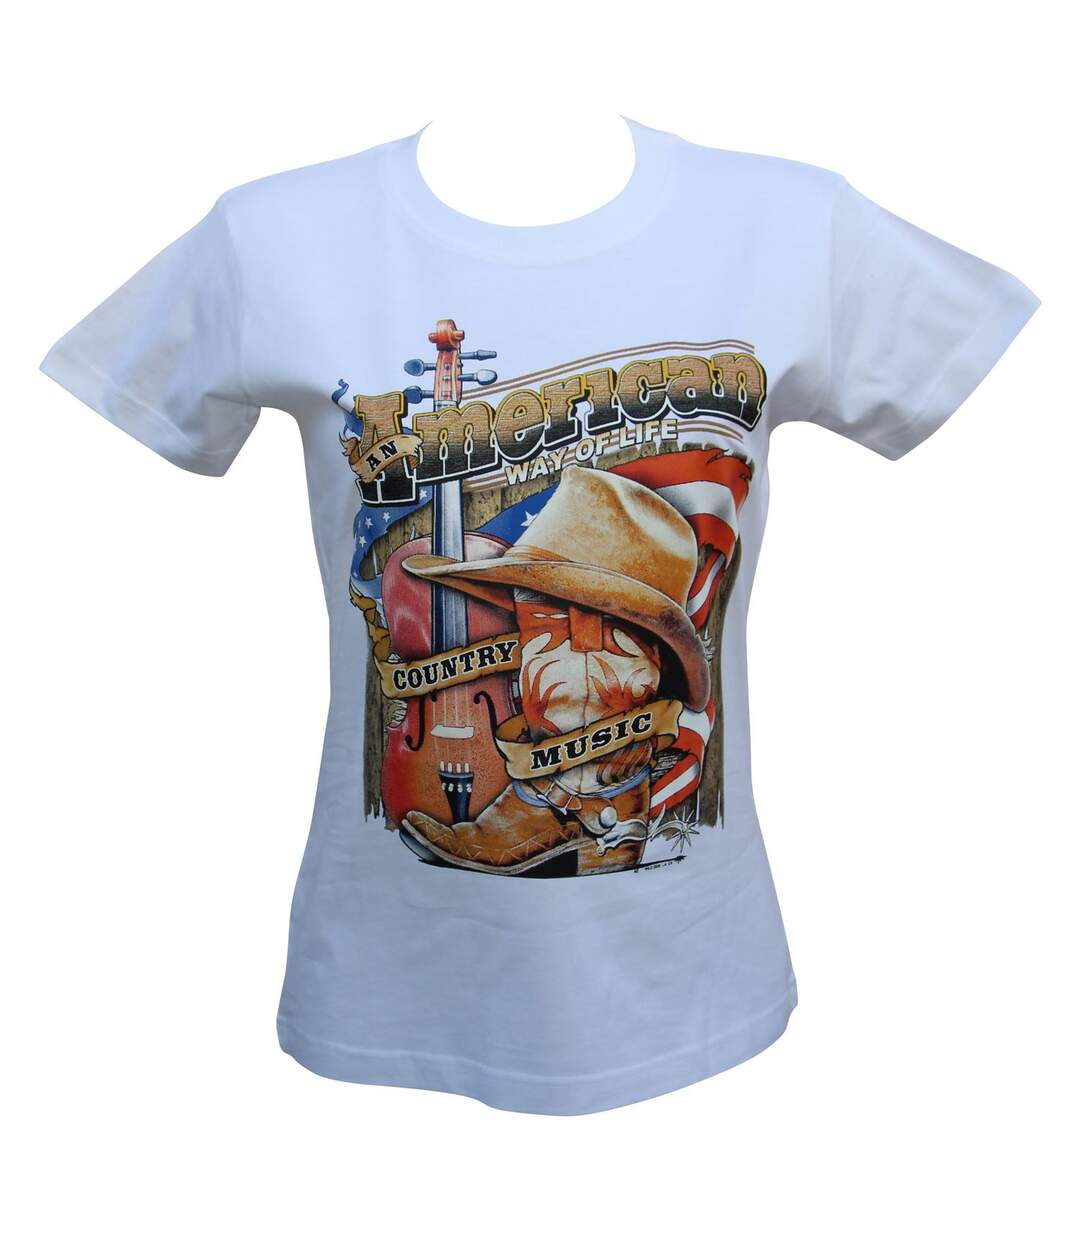 T-shirt femme manches courtes - Country Music - 12036 - blanc